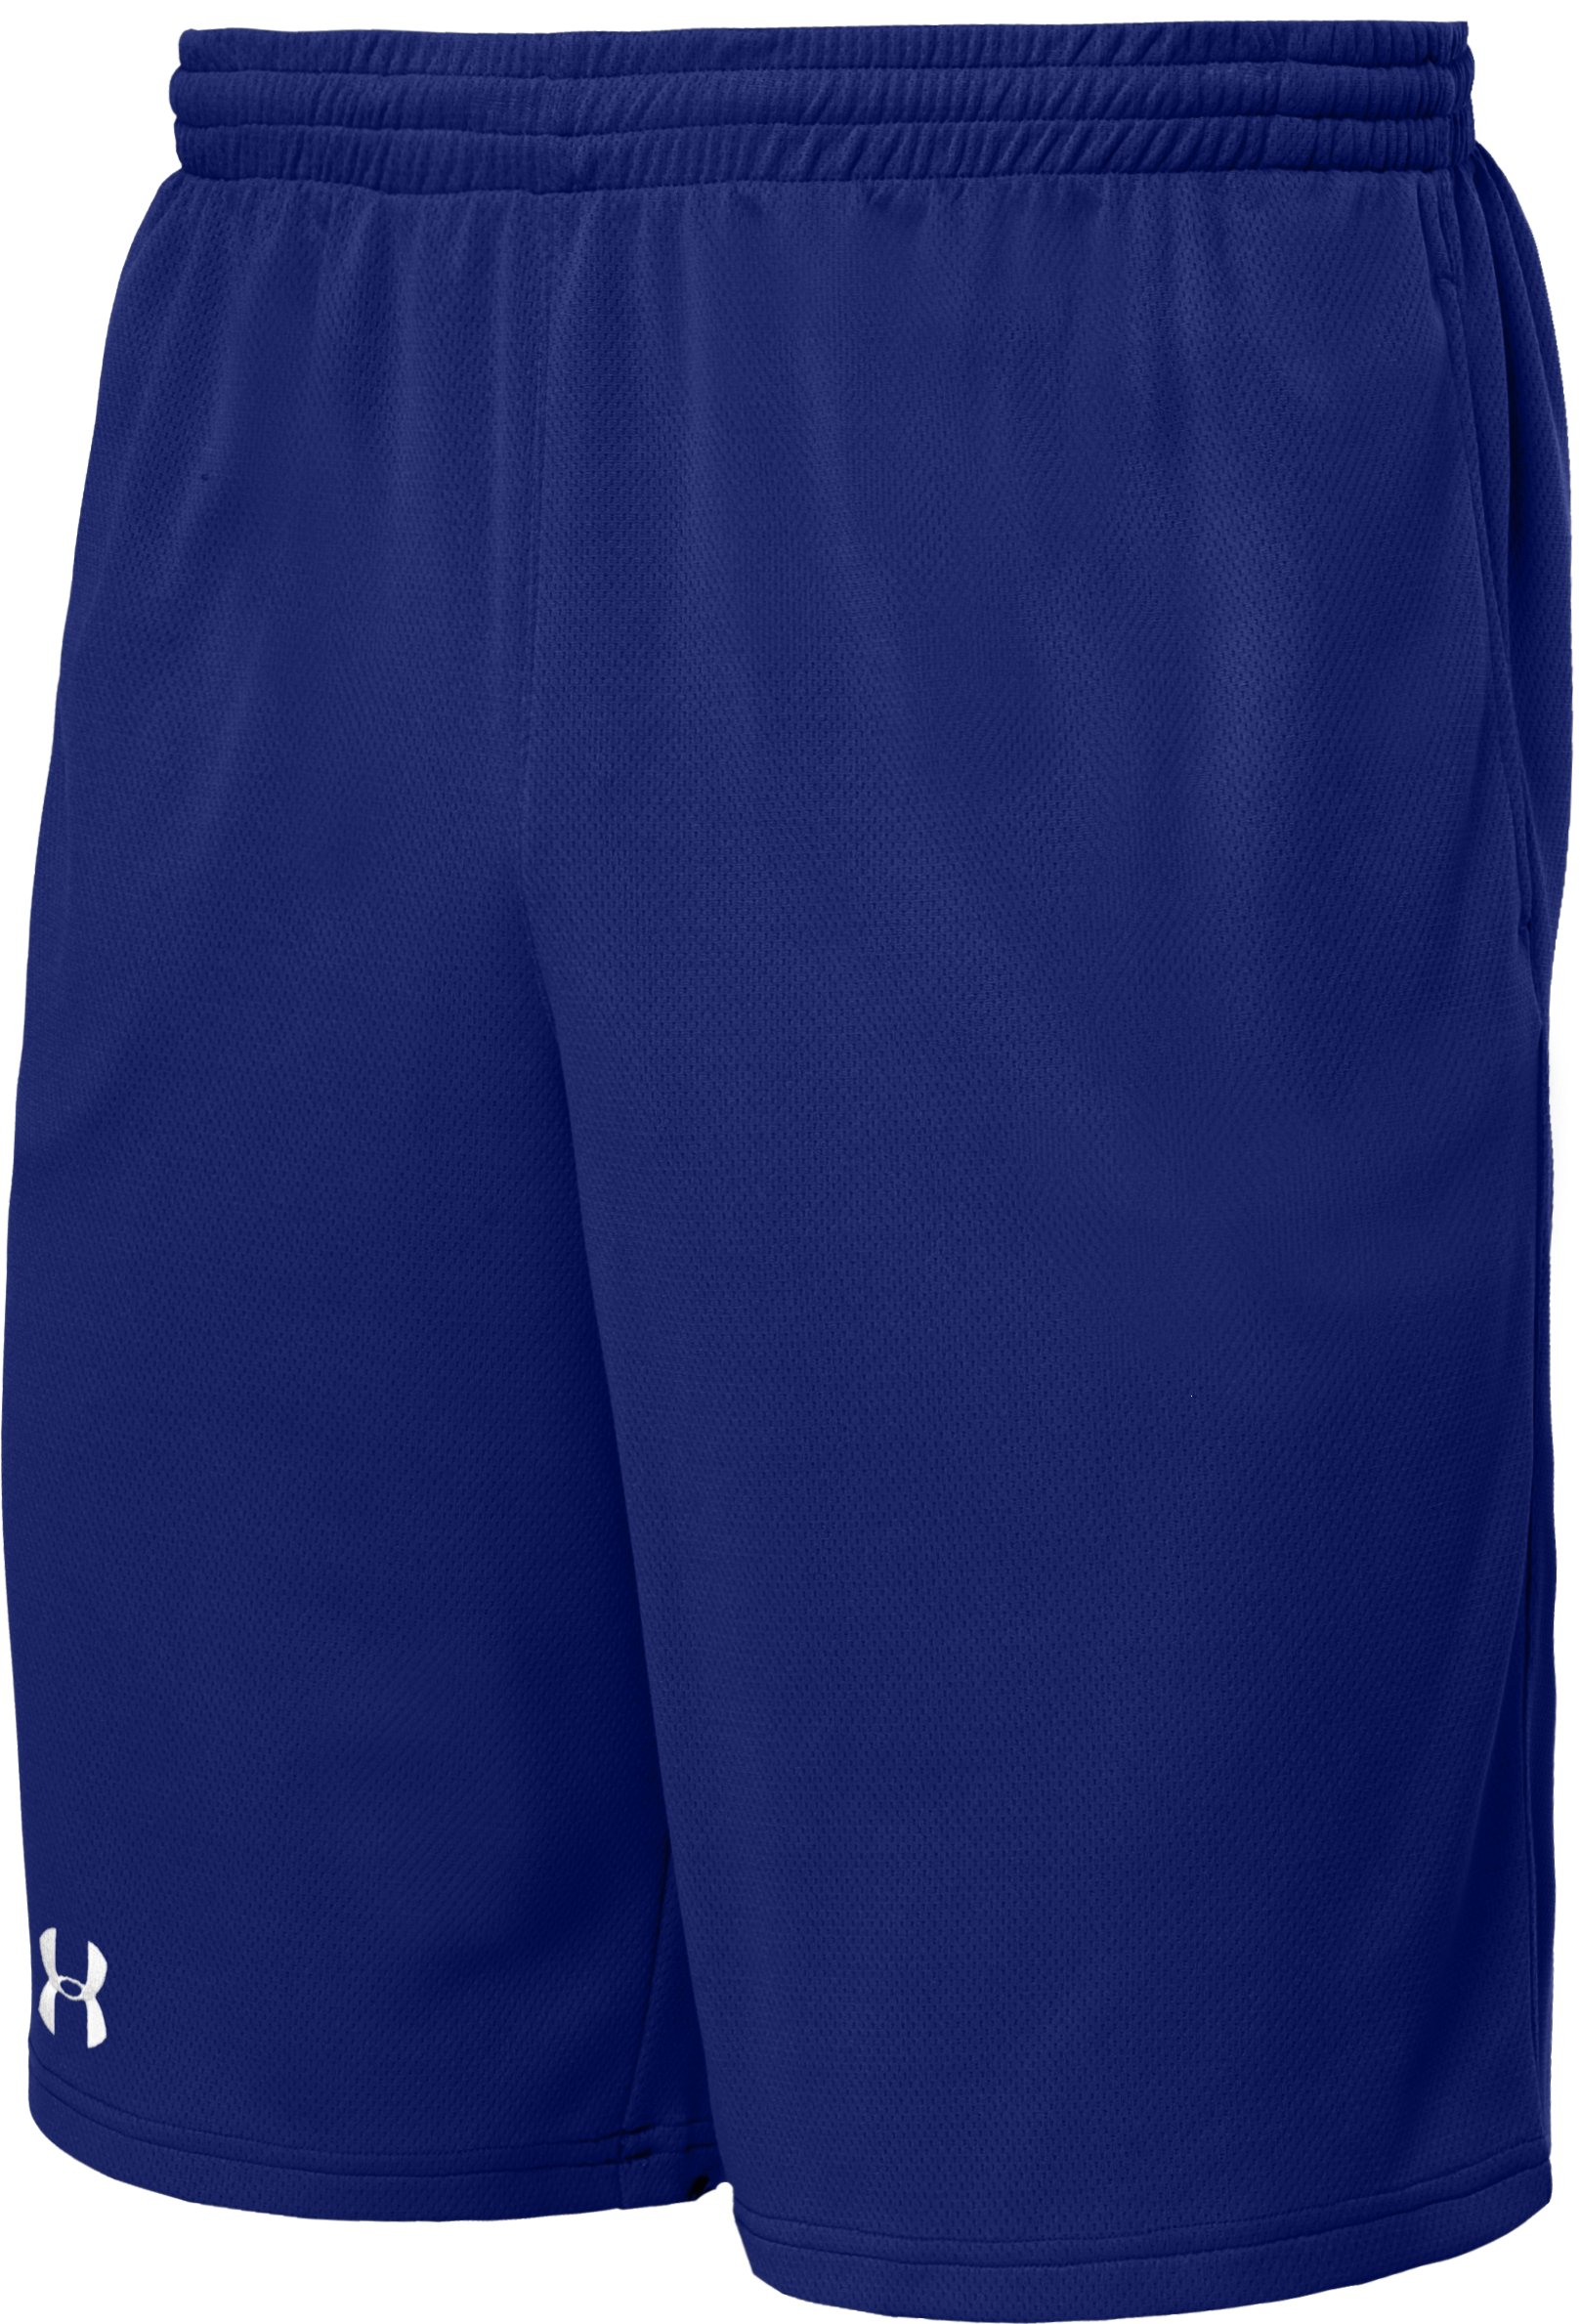 "Men's UA Flex 10"" Shorts, Royal,"